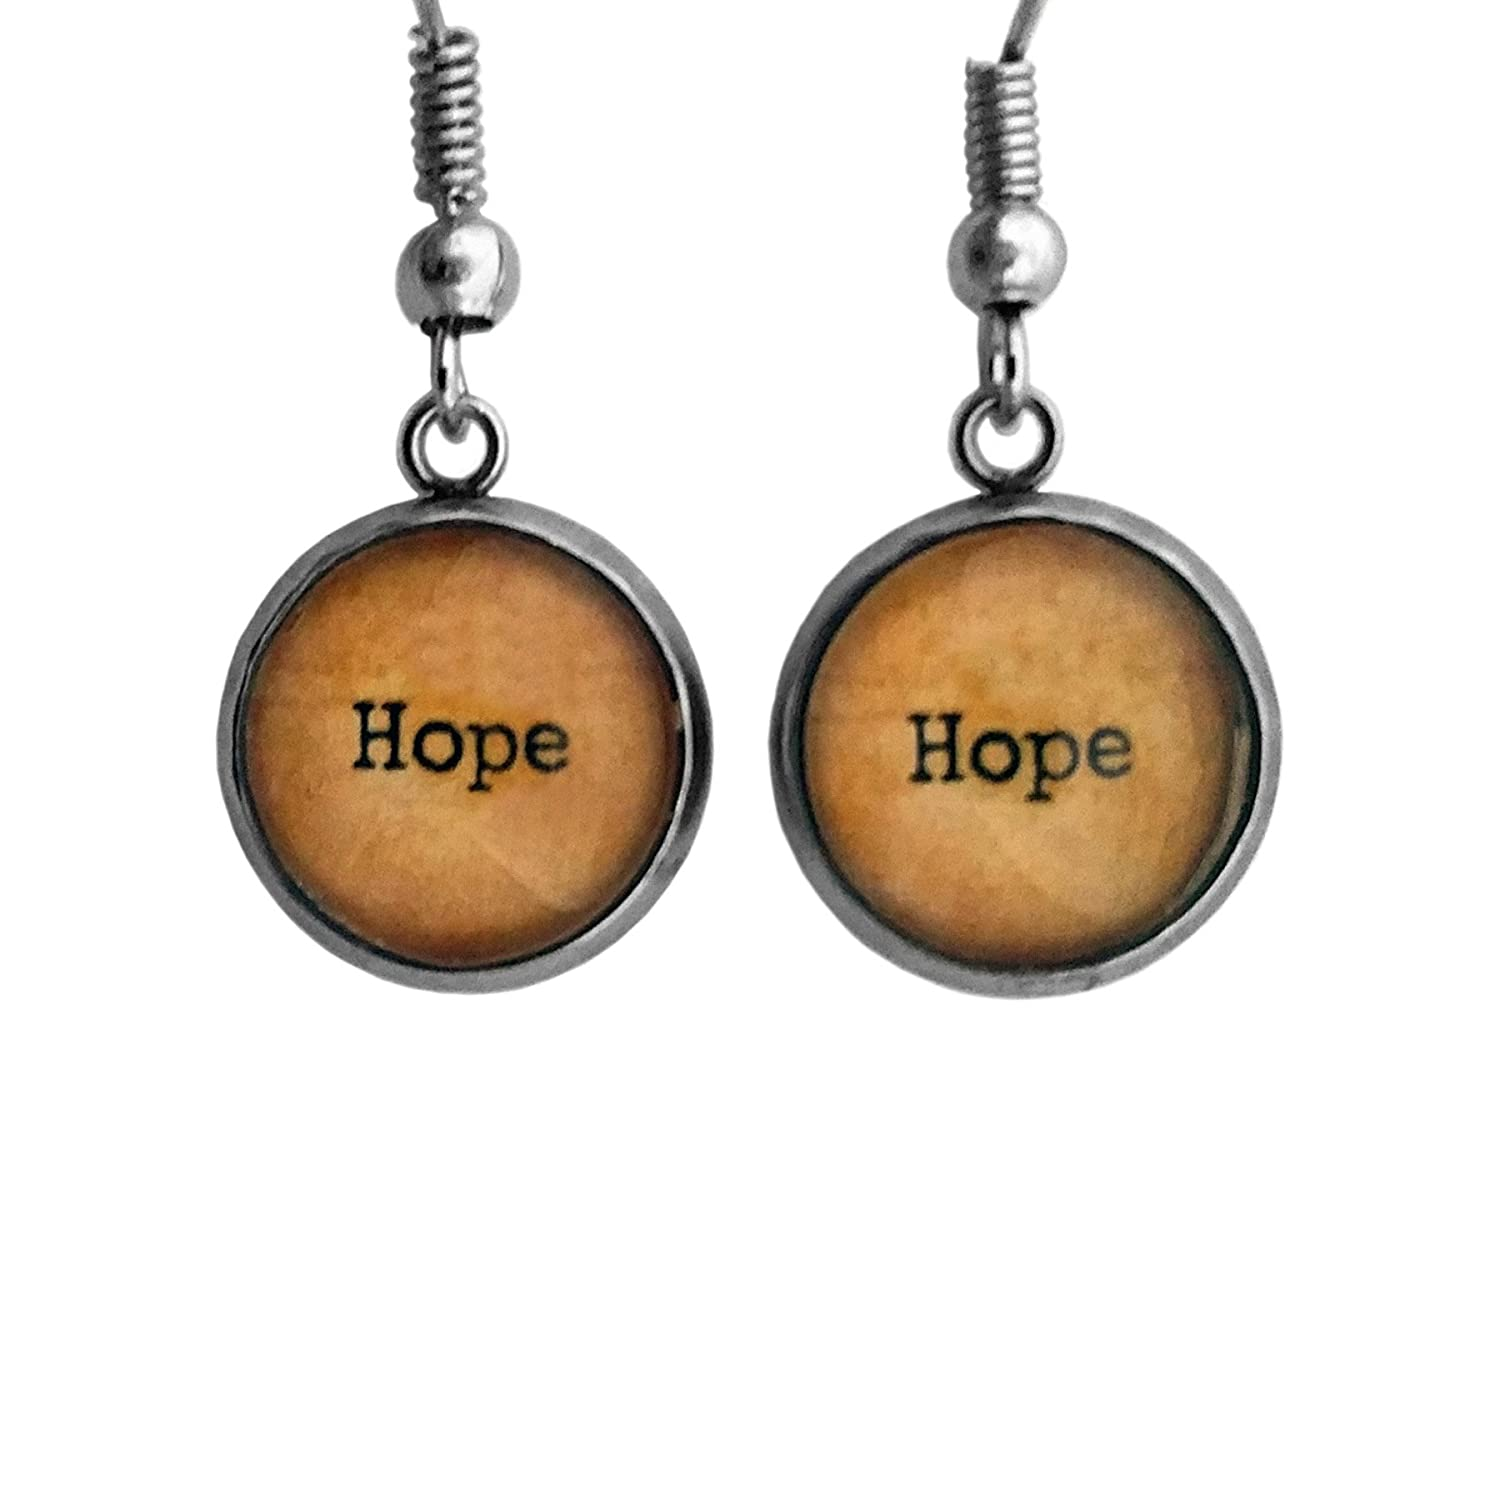 Hope Surgical Max 60% OFF Earrings Department store Steel